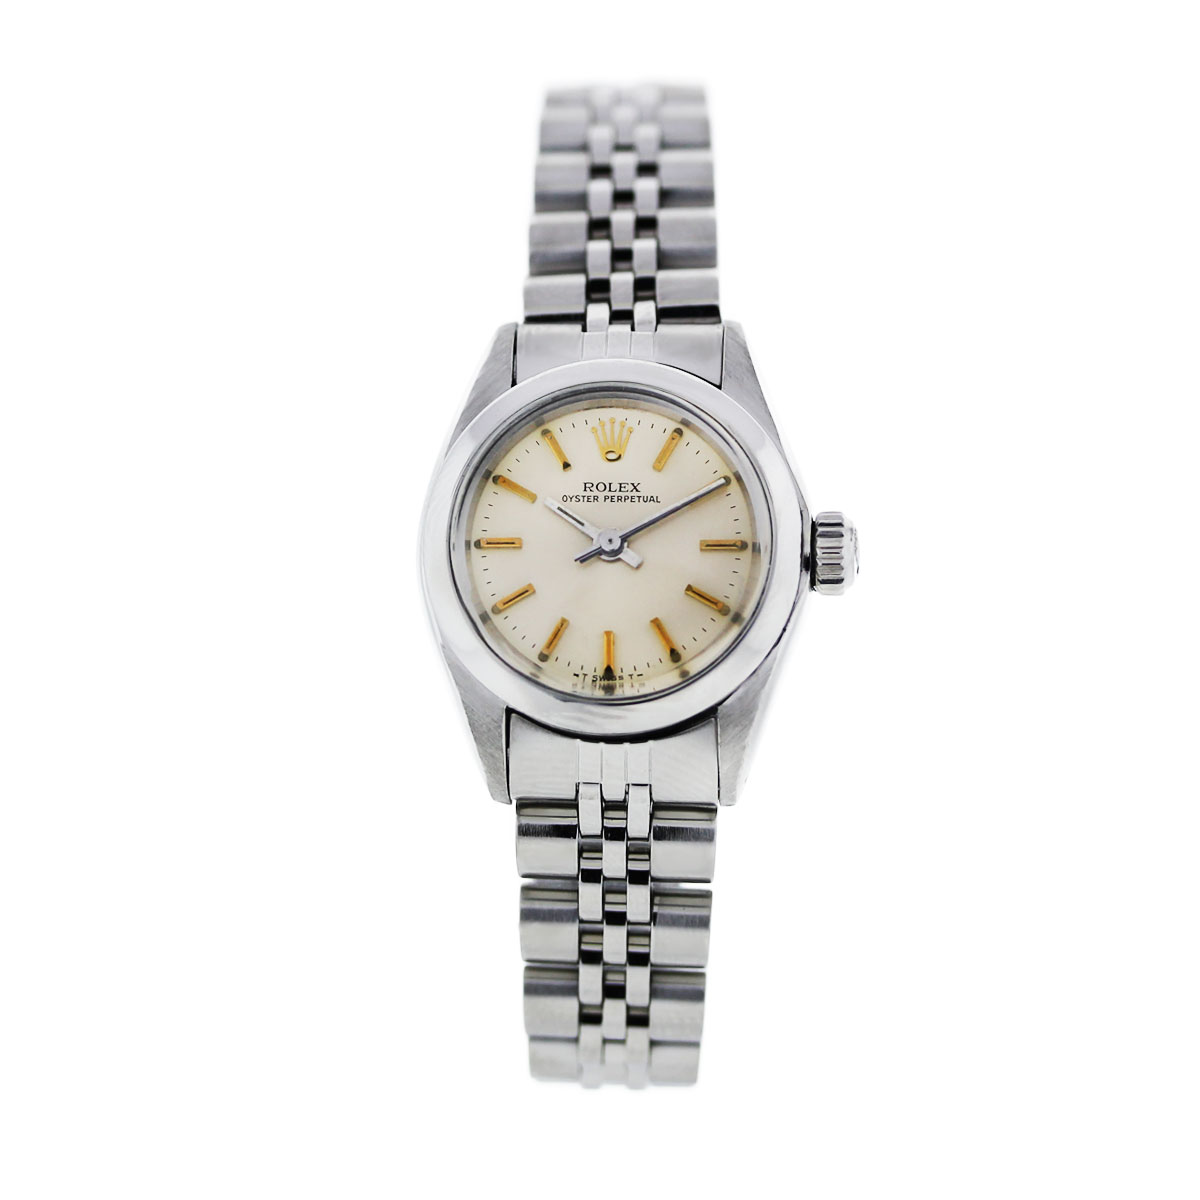 Rolex Oyster Perpetual Champagne Dial Ladies Watch